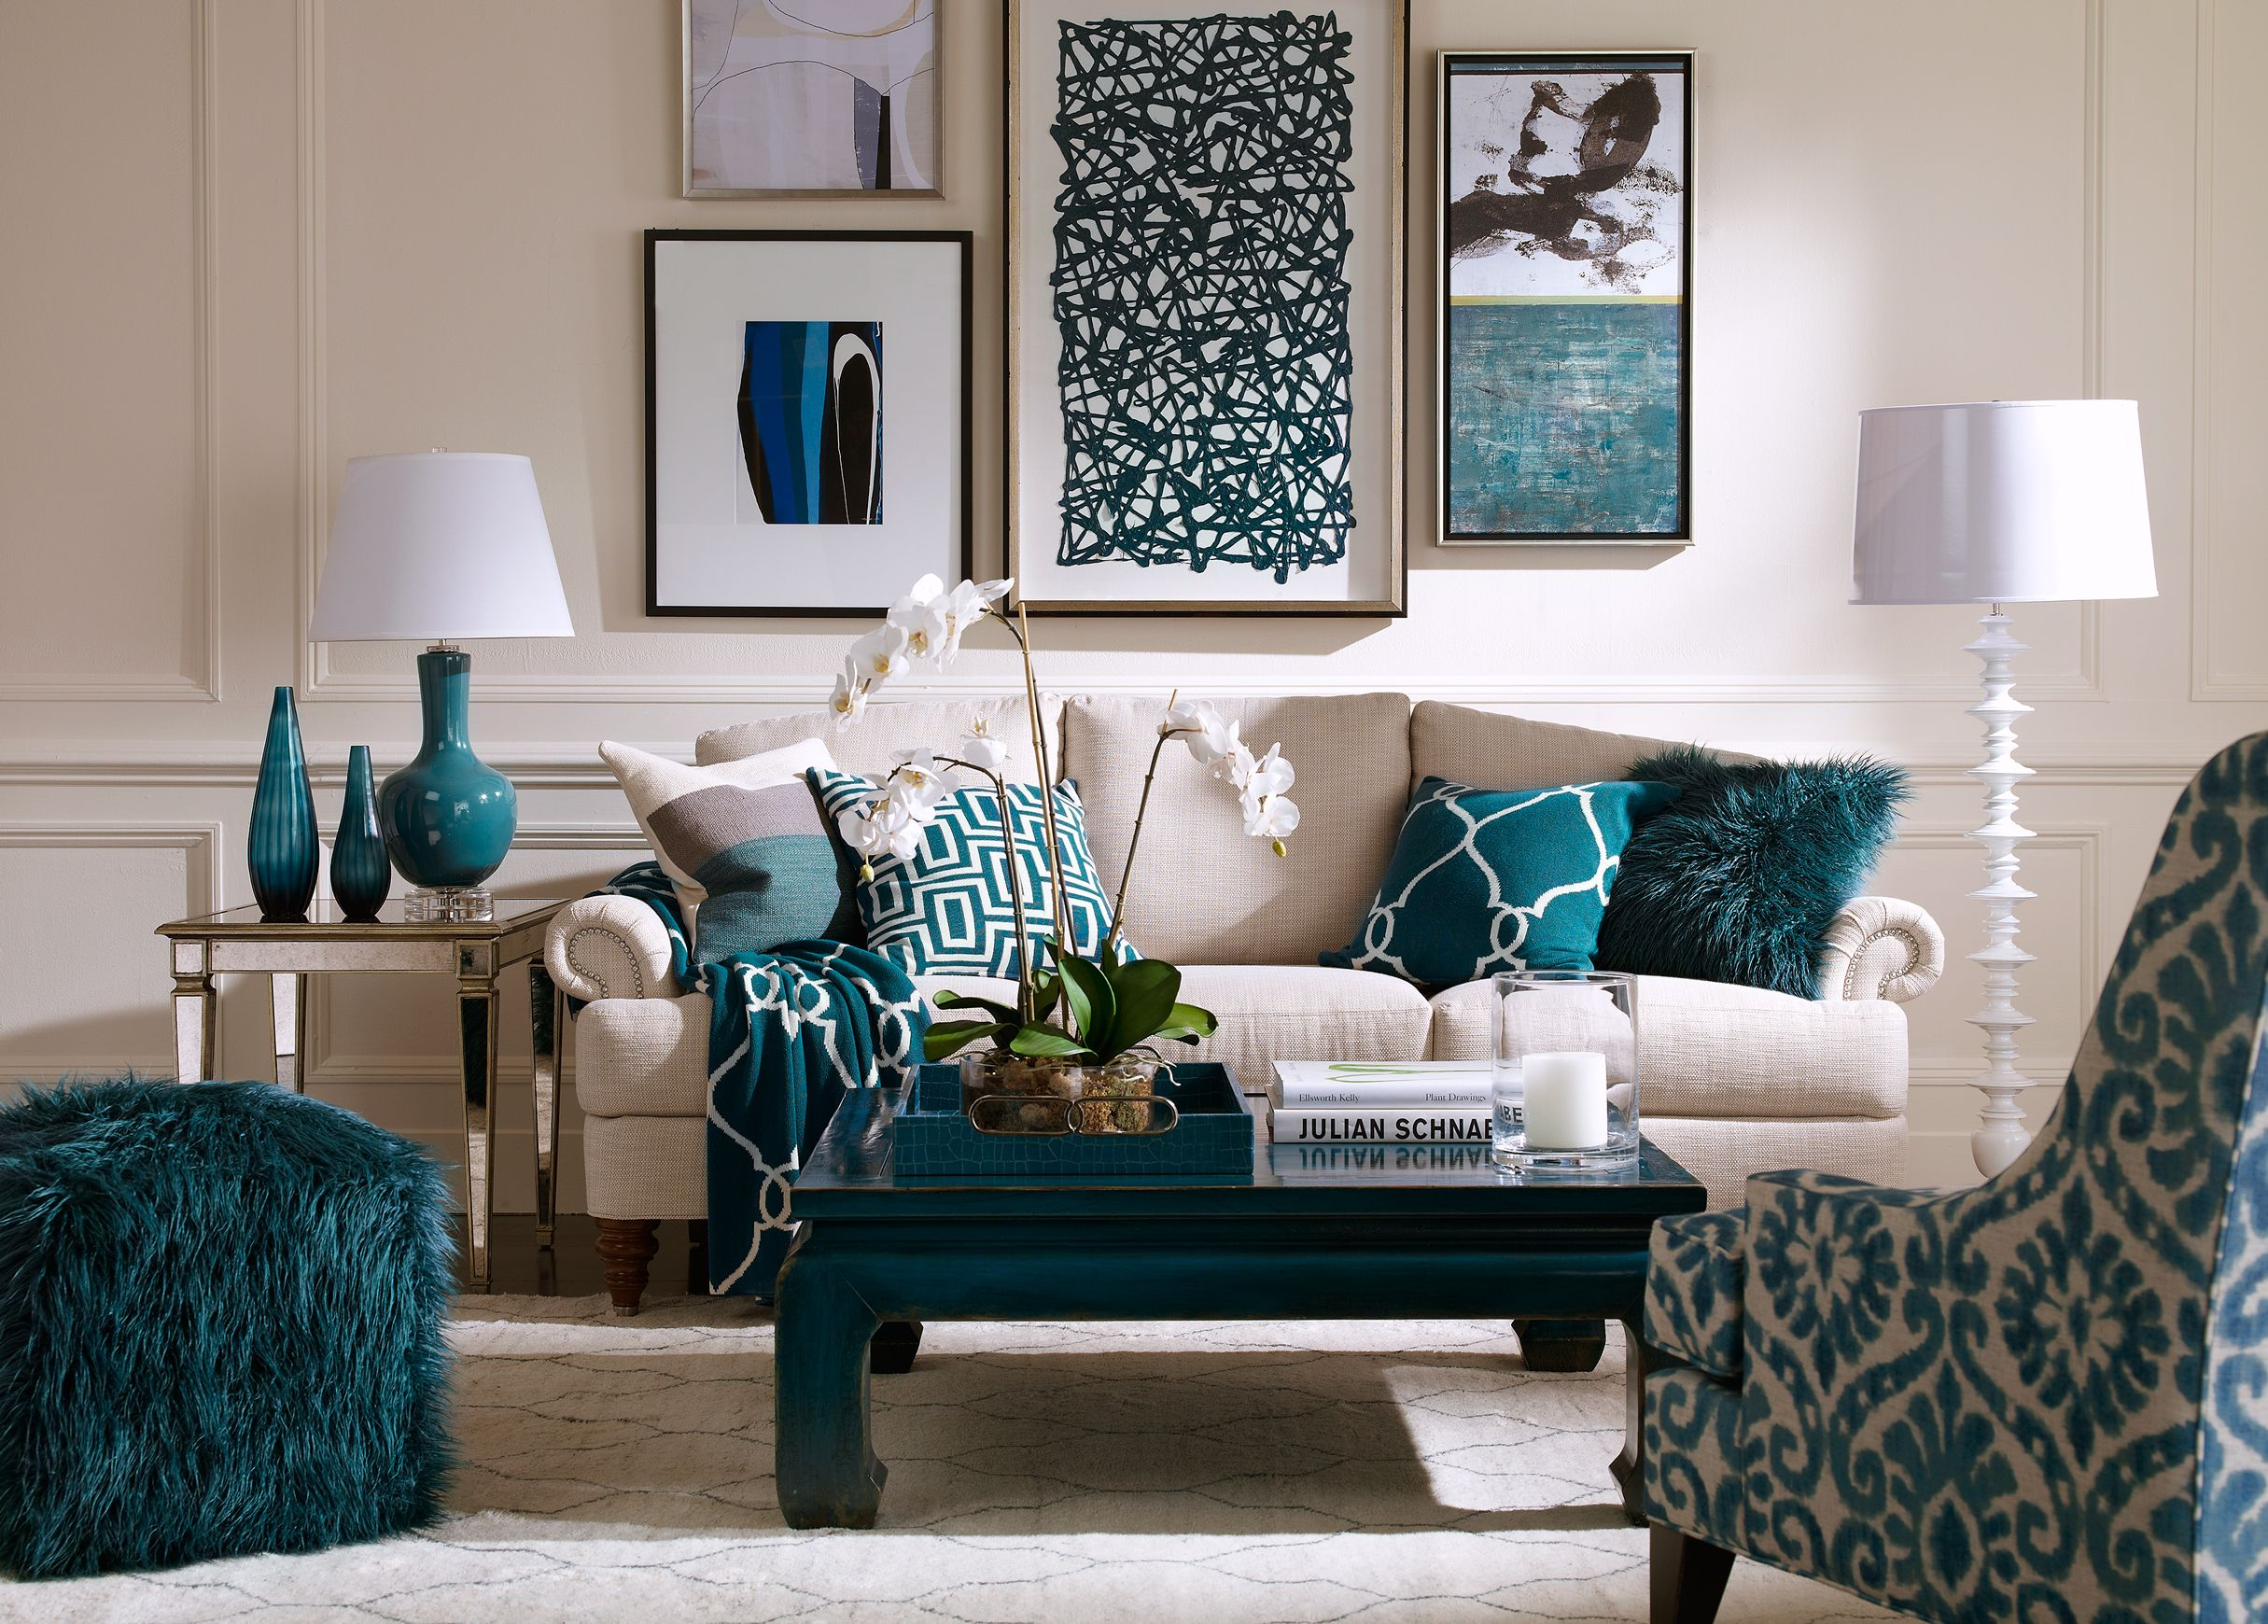 Captivating Turquoise Dining Room Ideas, Turquoise Rooms, Turquoise Living Room  Accessories, Using Turquoise In Decorating, Decorating With Turquoise  Accents, ...